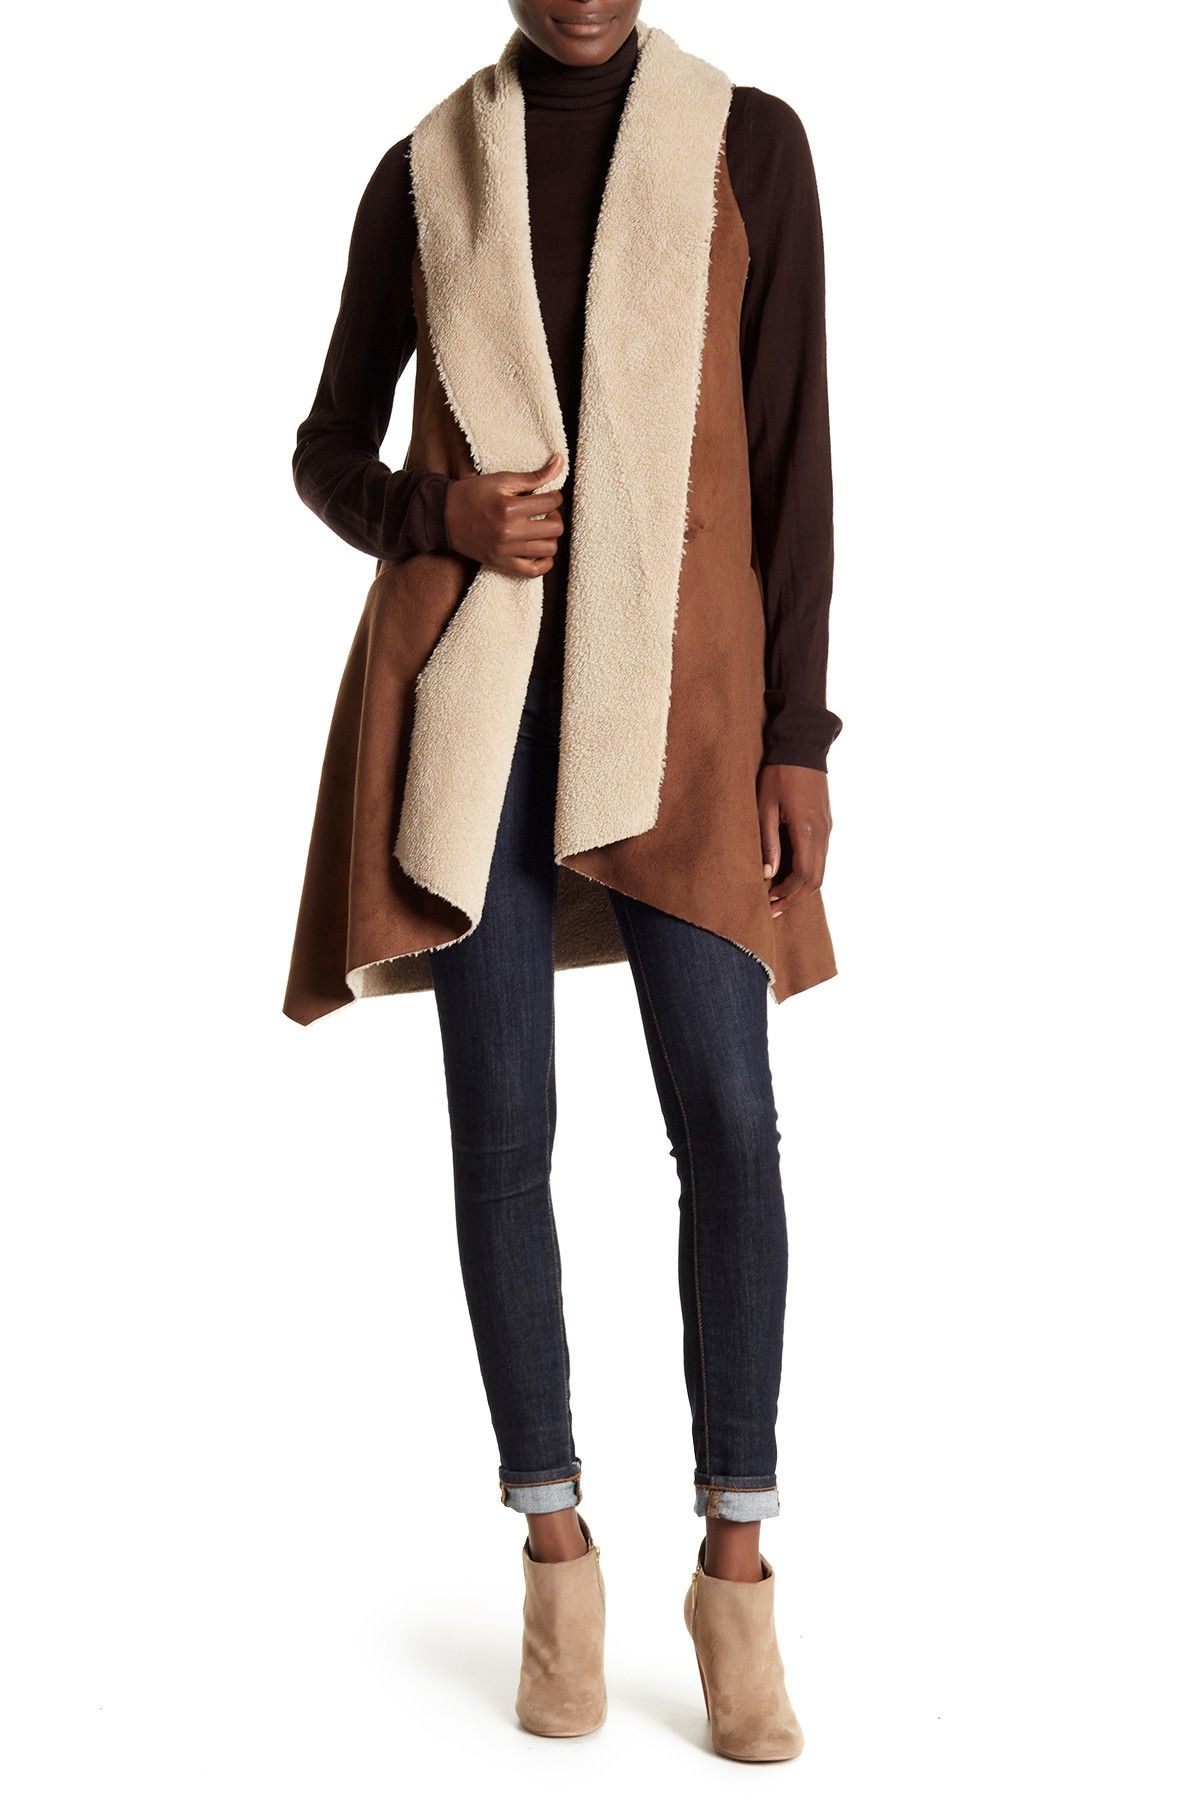 This faux shearling & suede vest creates countless outfit possibilities!